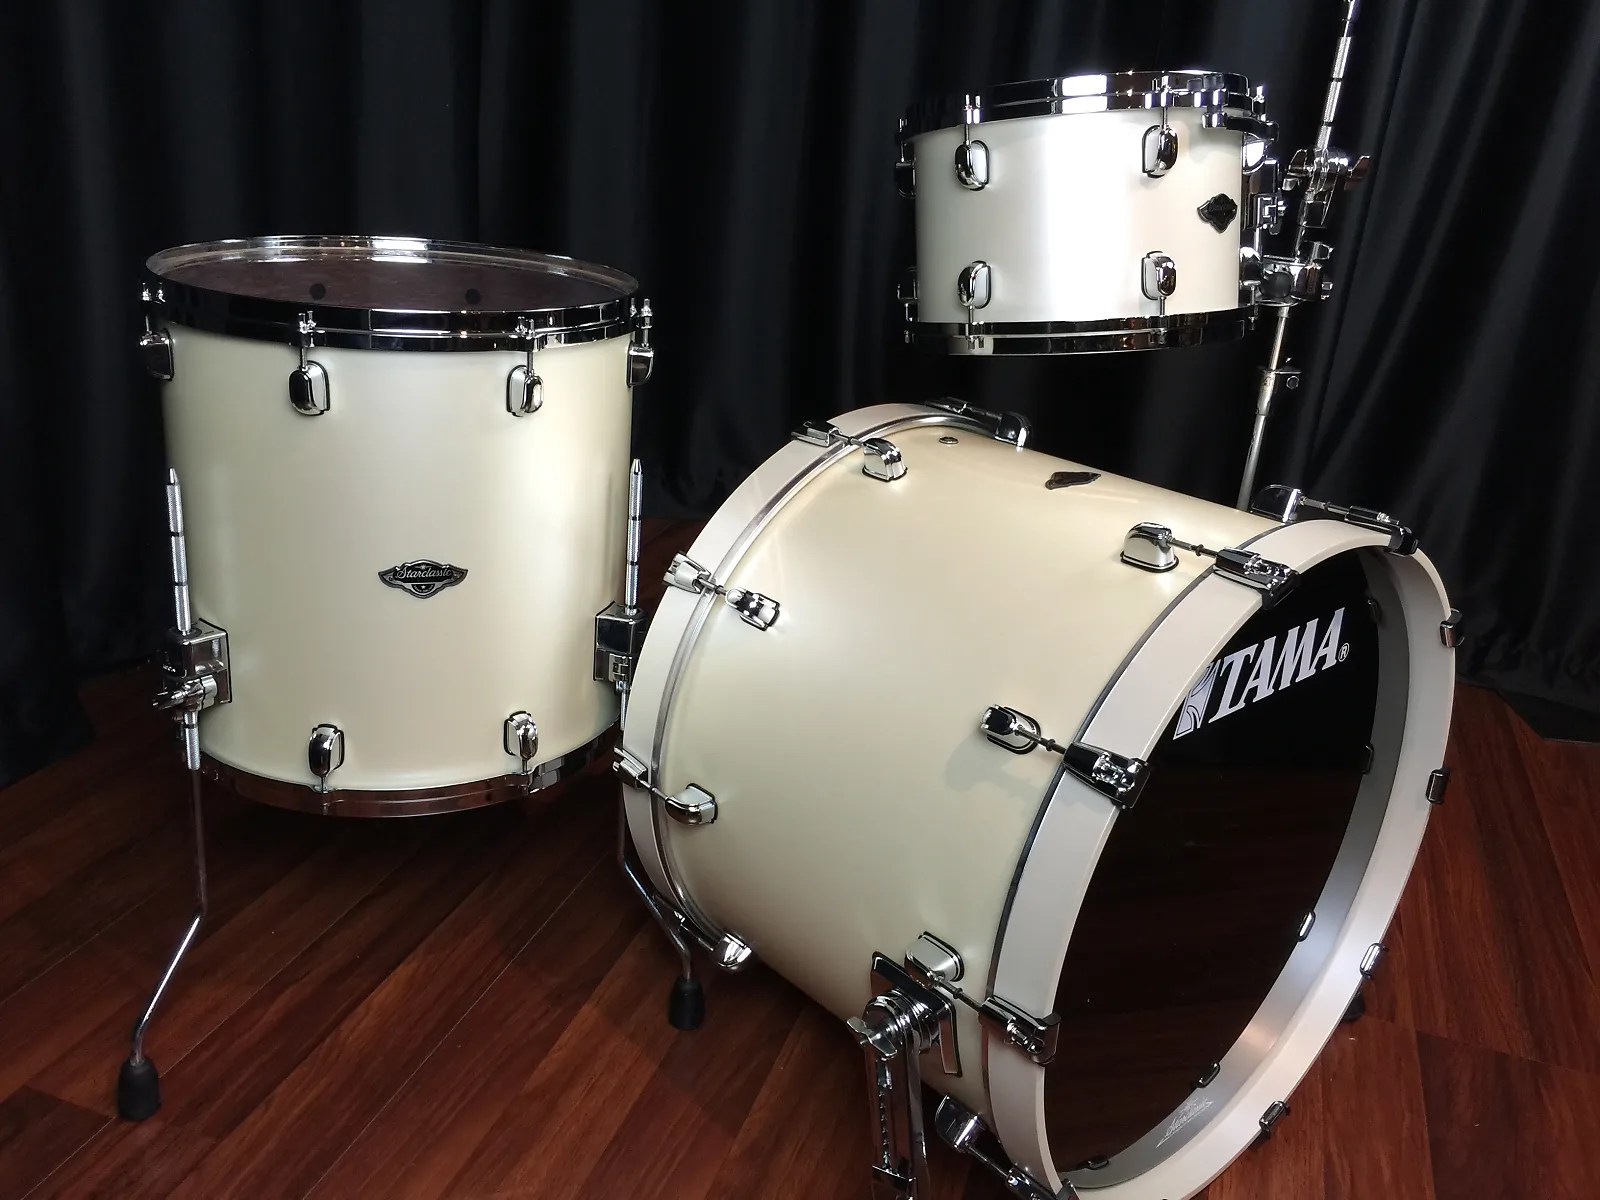 Tama drums sets Starclassic Bubinga Birch Satin Pearl White BB 3pc     Tama drums sets Starclassic Bubinga Birch Satin Pearl White BB 3pc set  PP32RZS SPW New